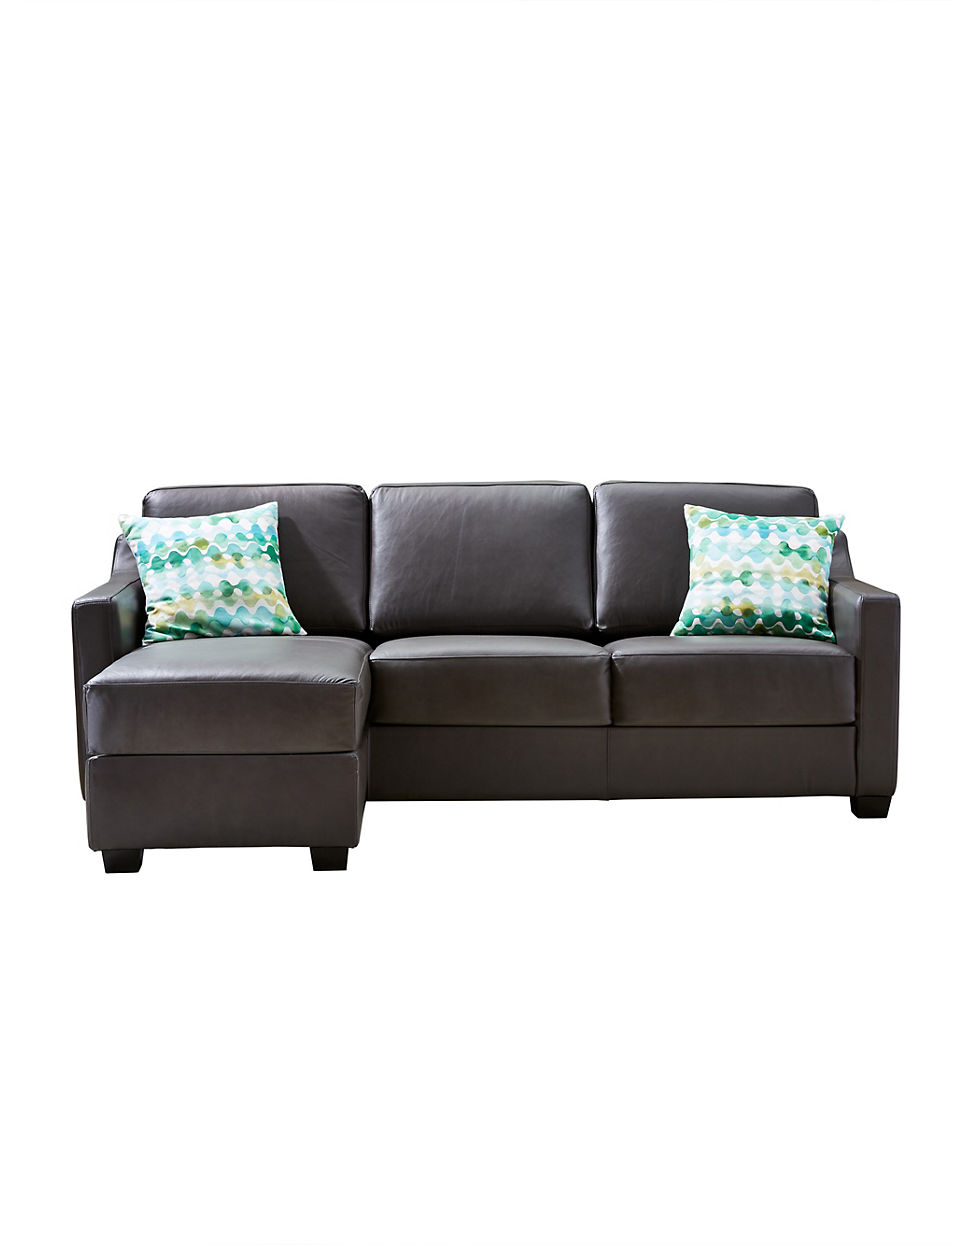 Leather Sofa Edmonton Kijiji Refil Sofa